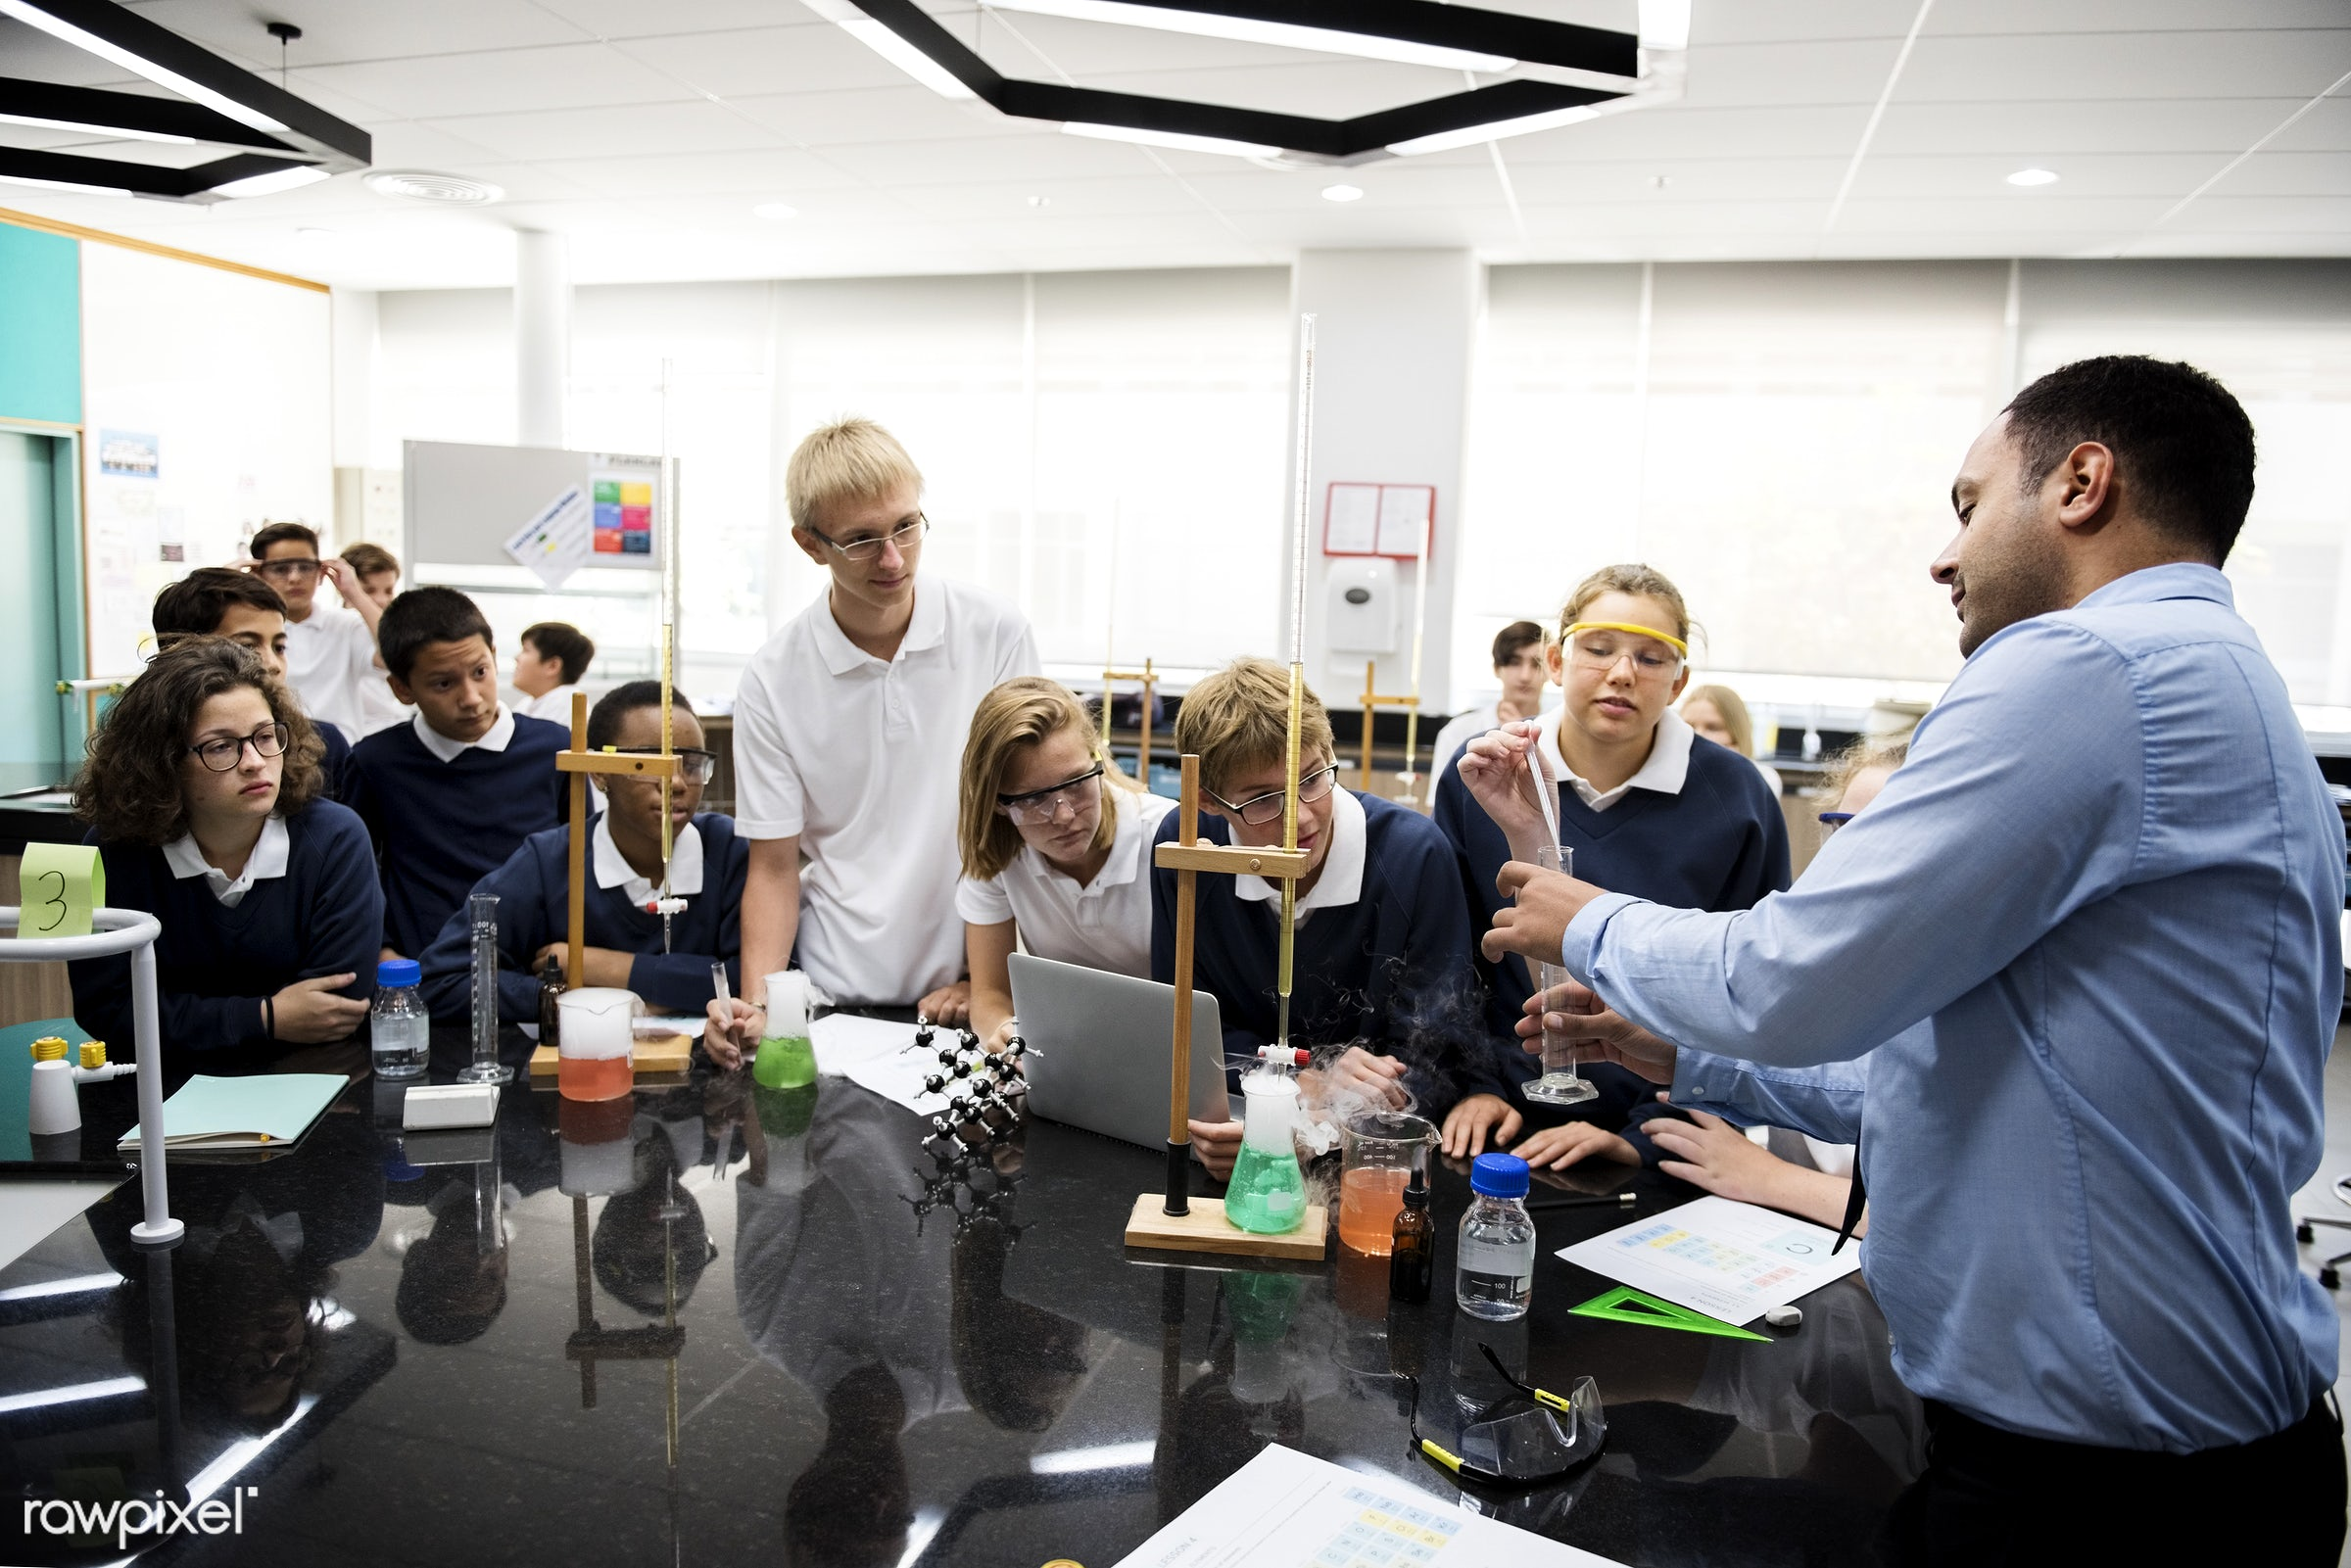 using, person, solutions, goggles, study, people, together, science, young adult, mixing, experiment, laptop, beakers,...